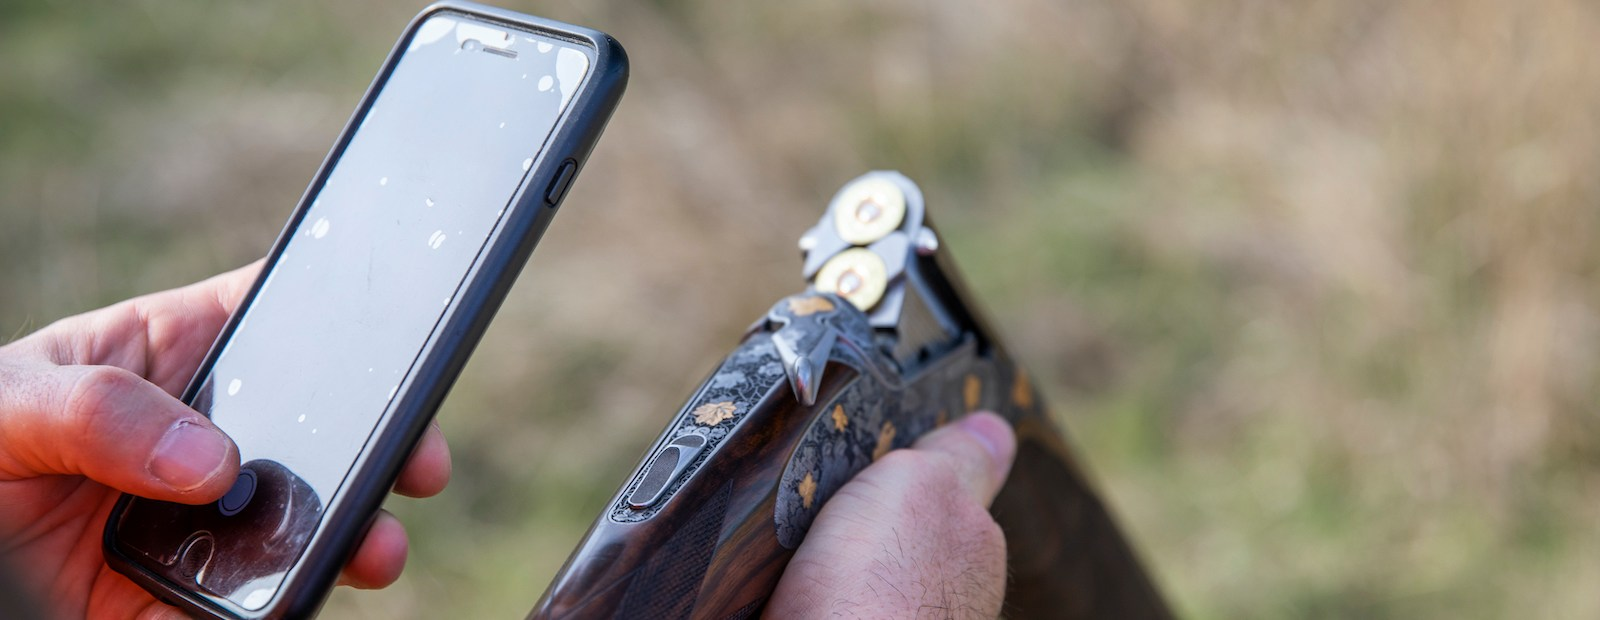 A hunter uses a cell phone while holding an over-under shotgun